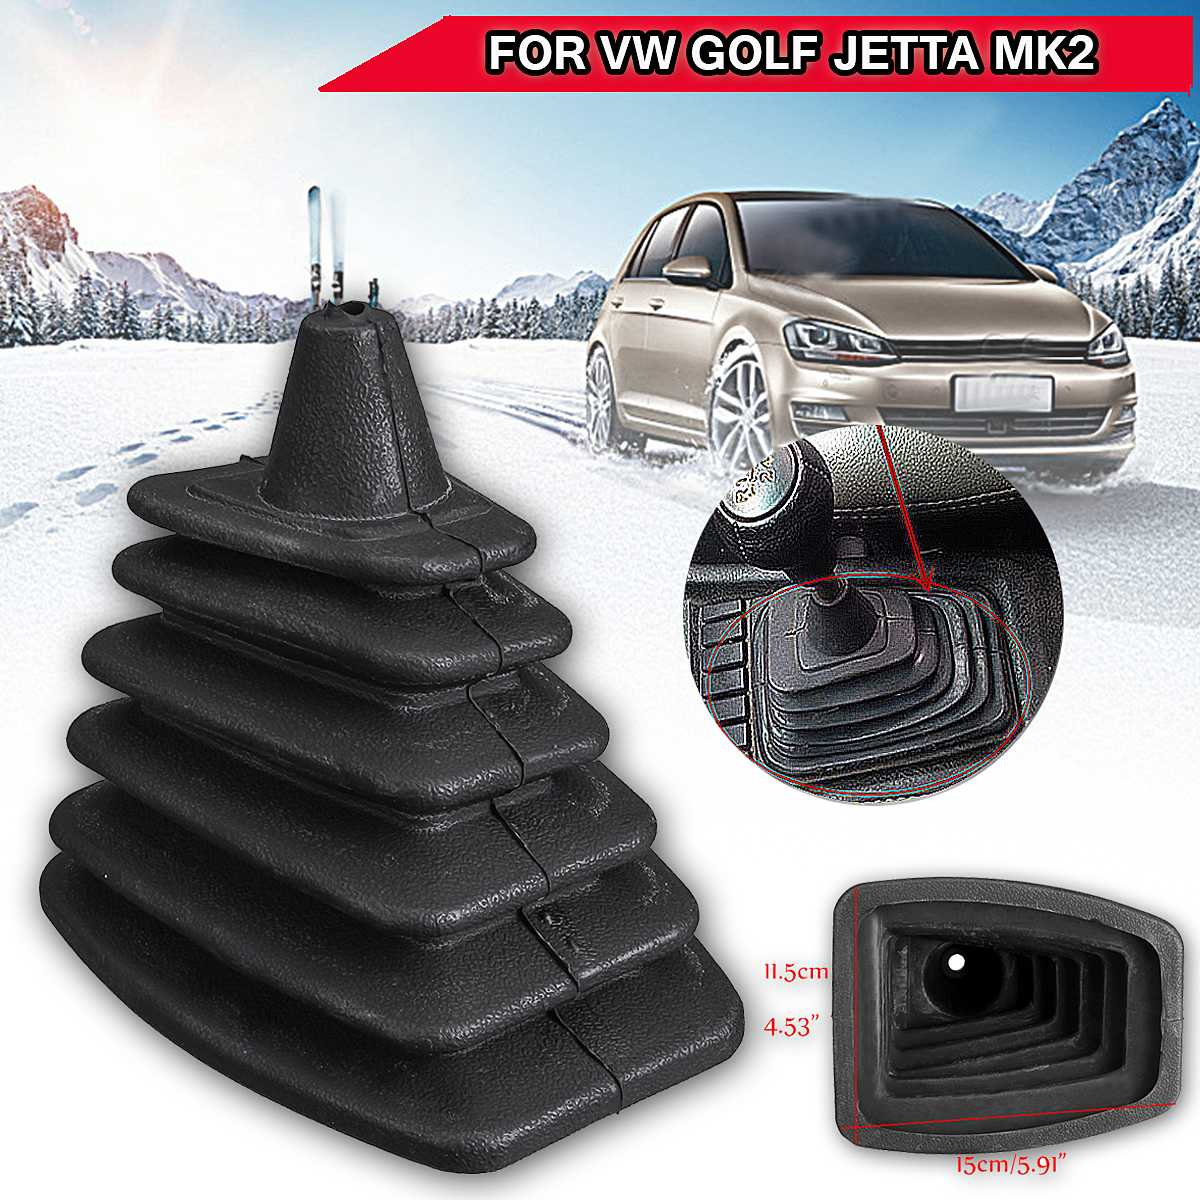 Car Gear Shift Collar Gaiter Boot Cover Soft Rubber Dustproof Soft Cover for Volkswagen for <font><b>VW</b></font> <font><b>GOLF</b></font> MK2 II JETTA II image